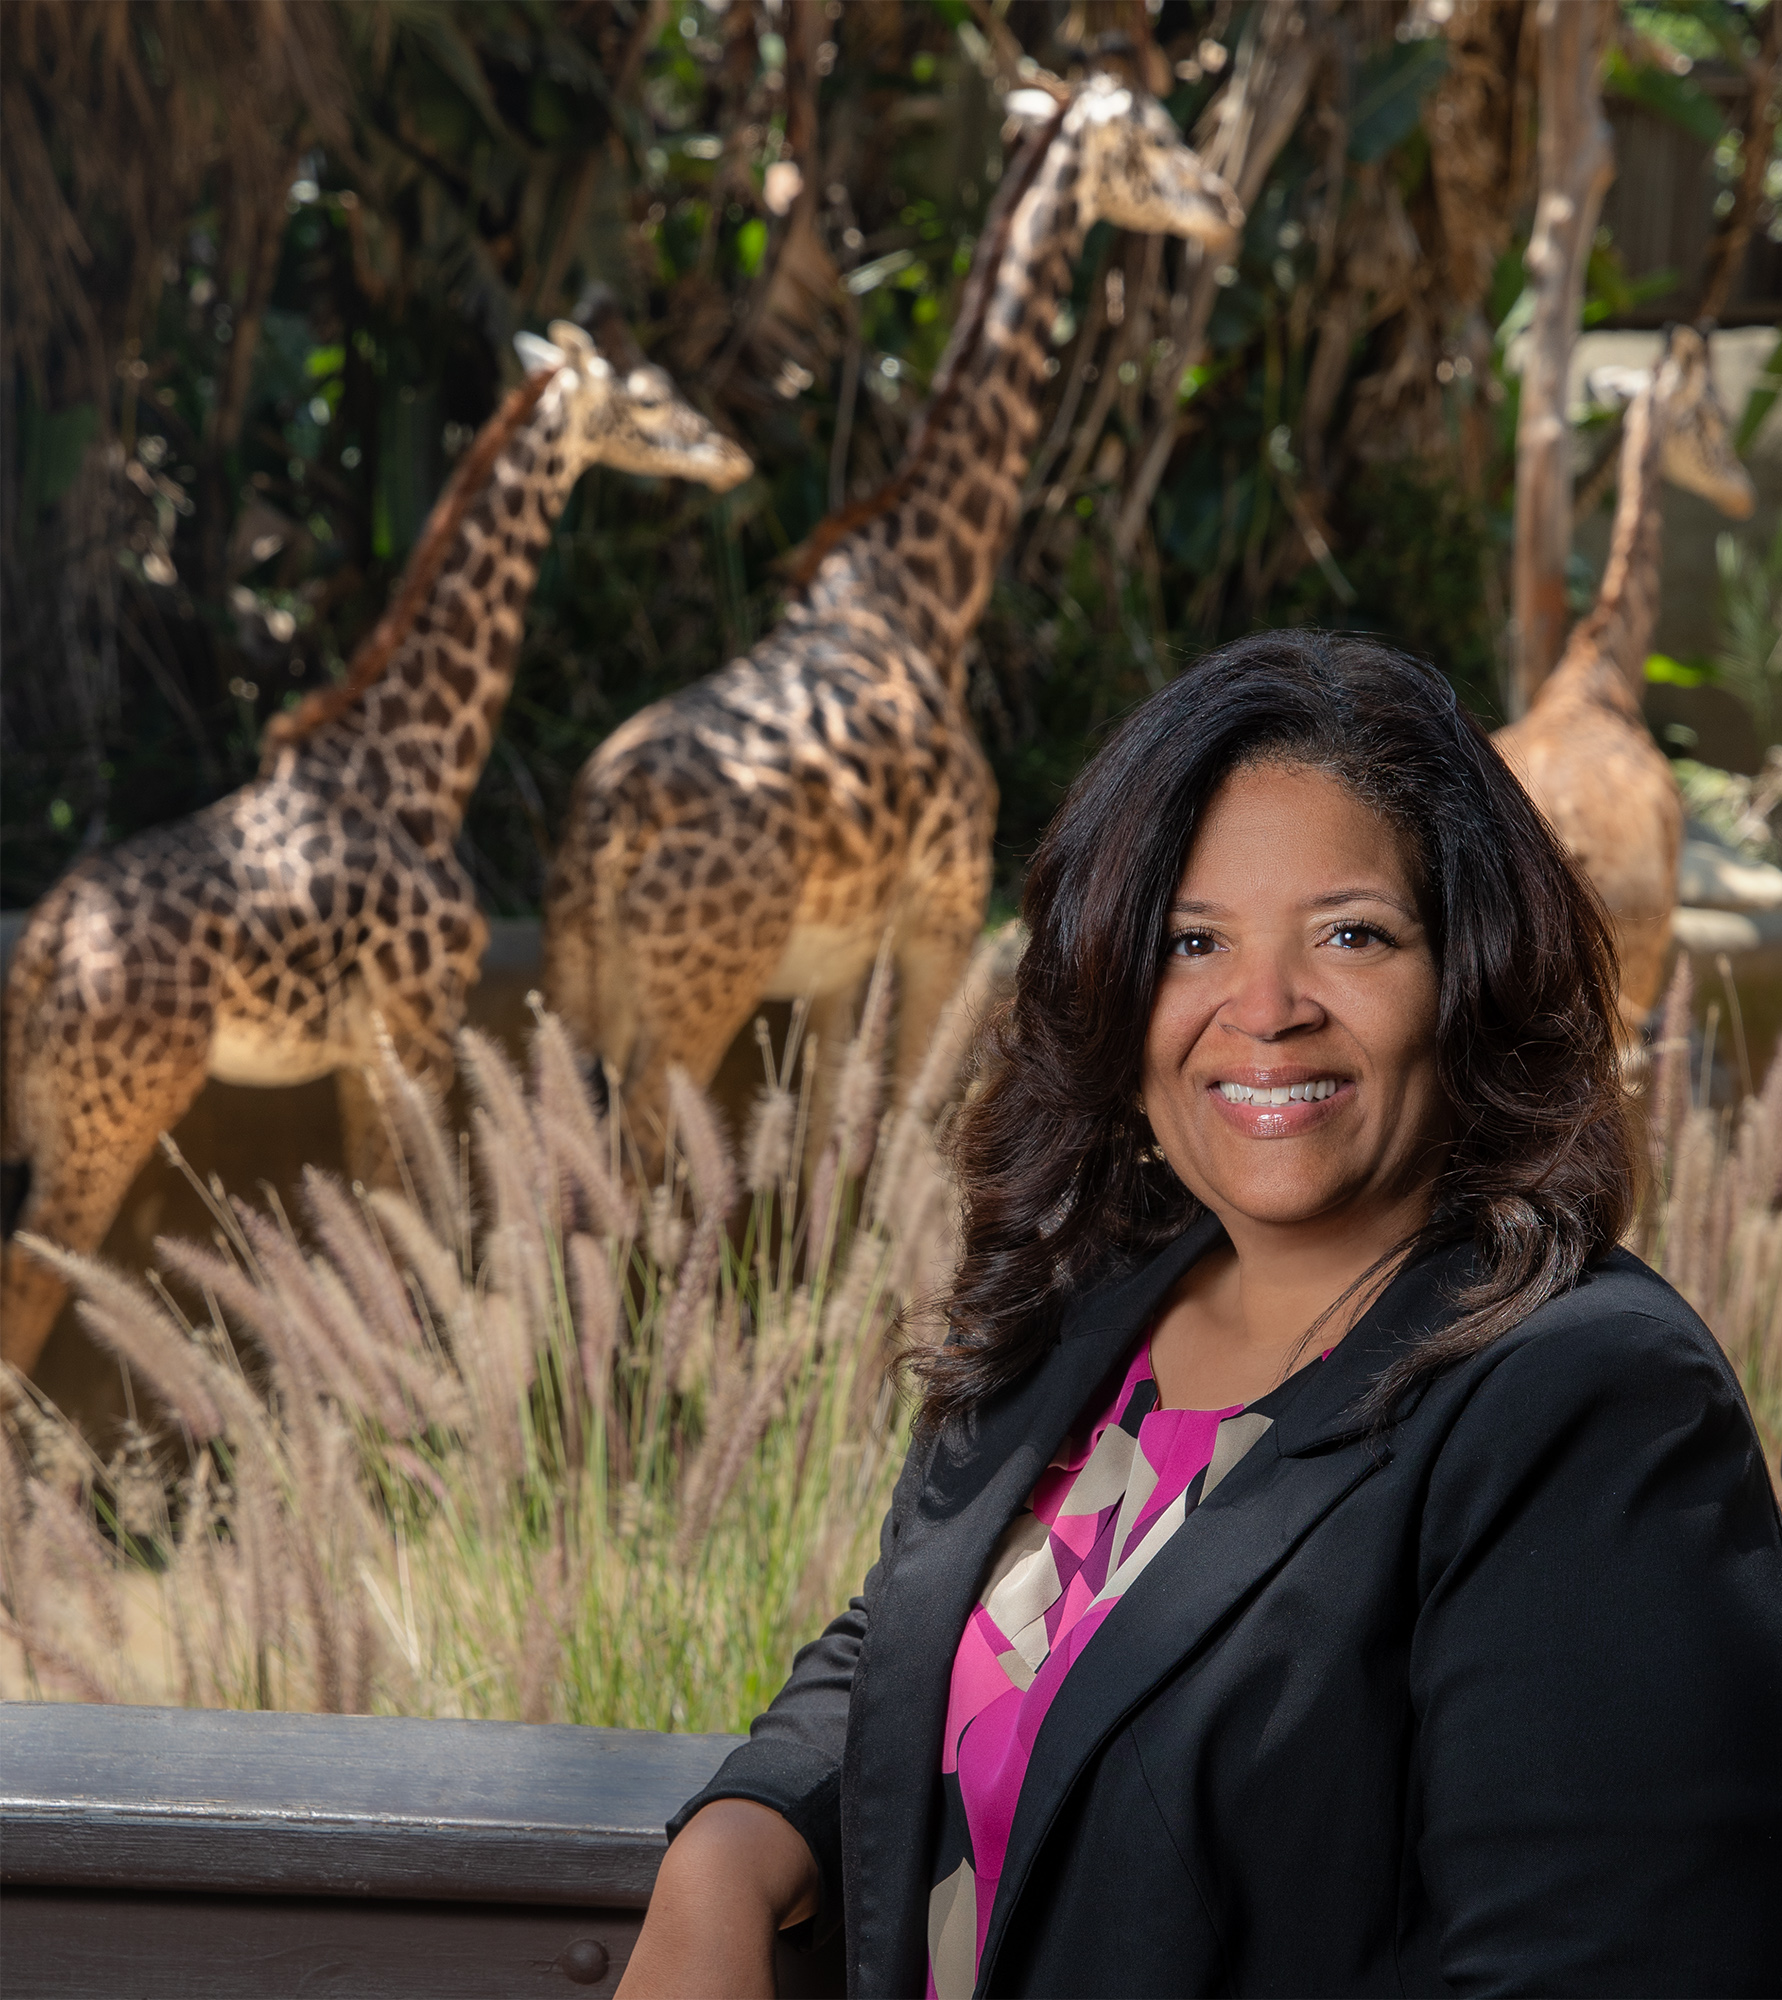 Denise Verret with a group of giraffe in the background